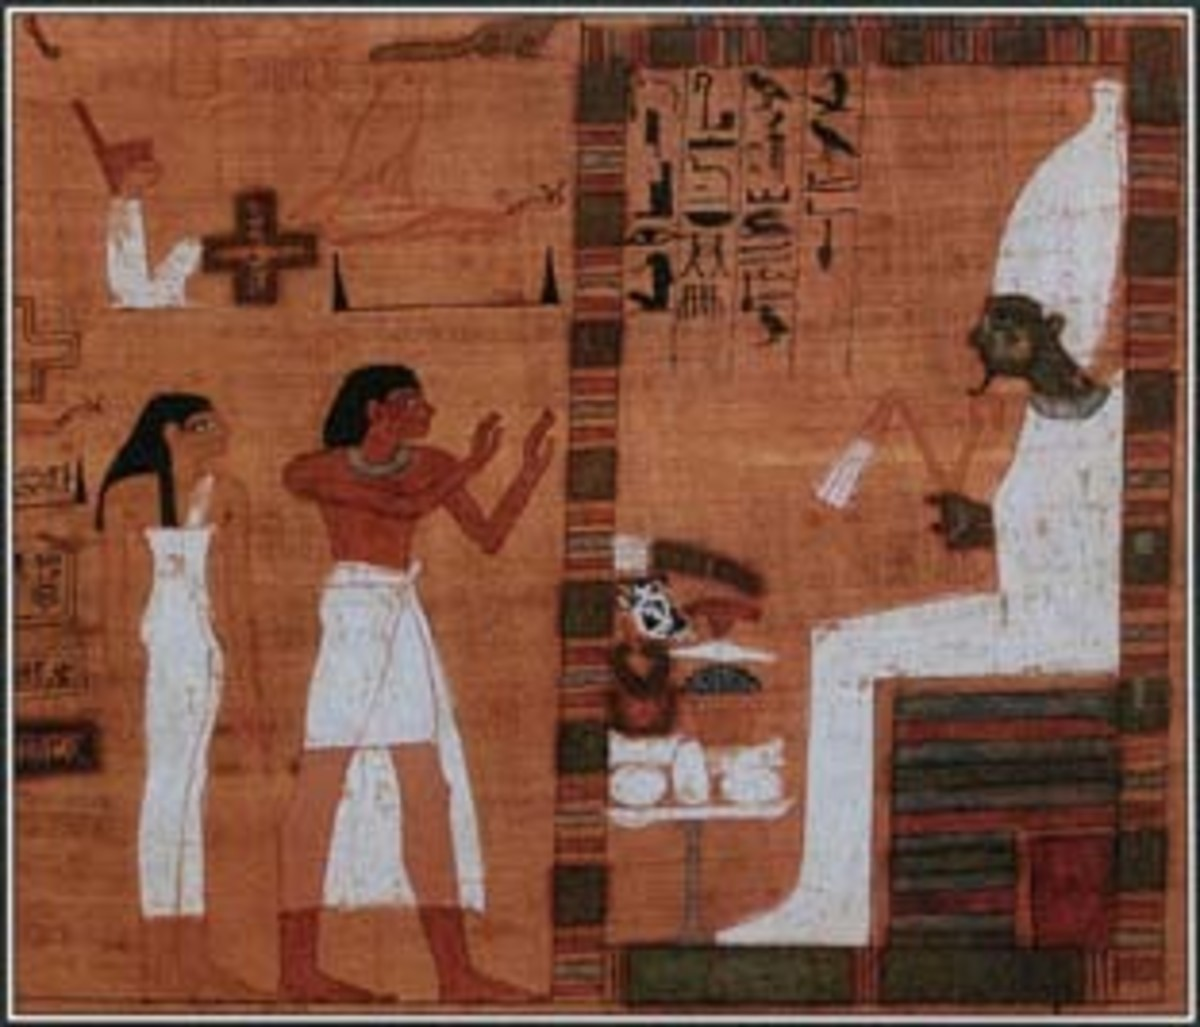 Egyptians believed that their soul had to be judged by Osiris and many other Gods before they could enter eternal life. In this illustrations, souls stand before Osiris at the moment of judgement.